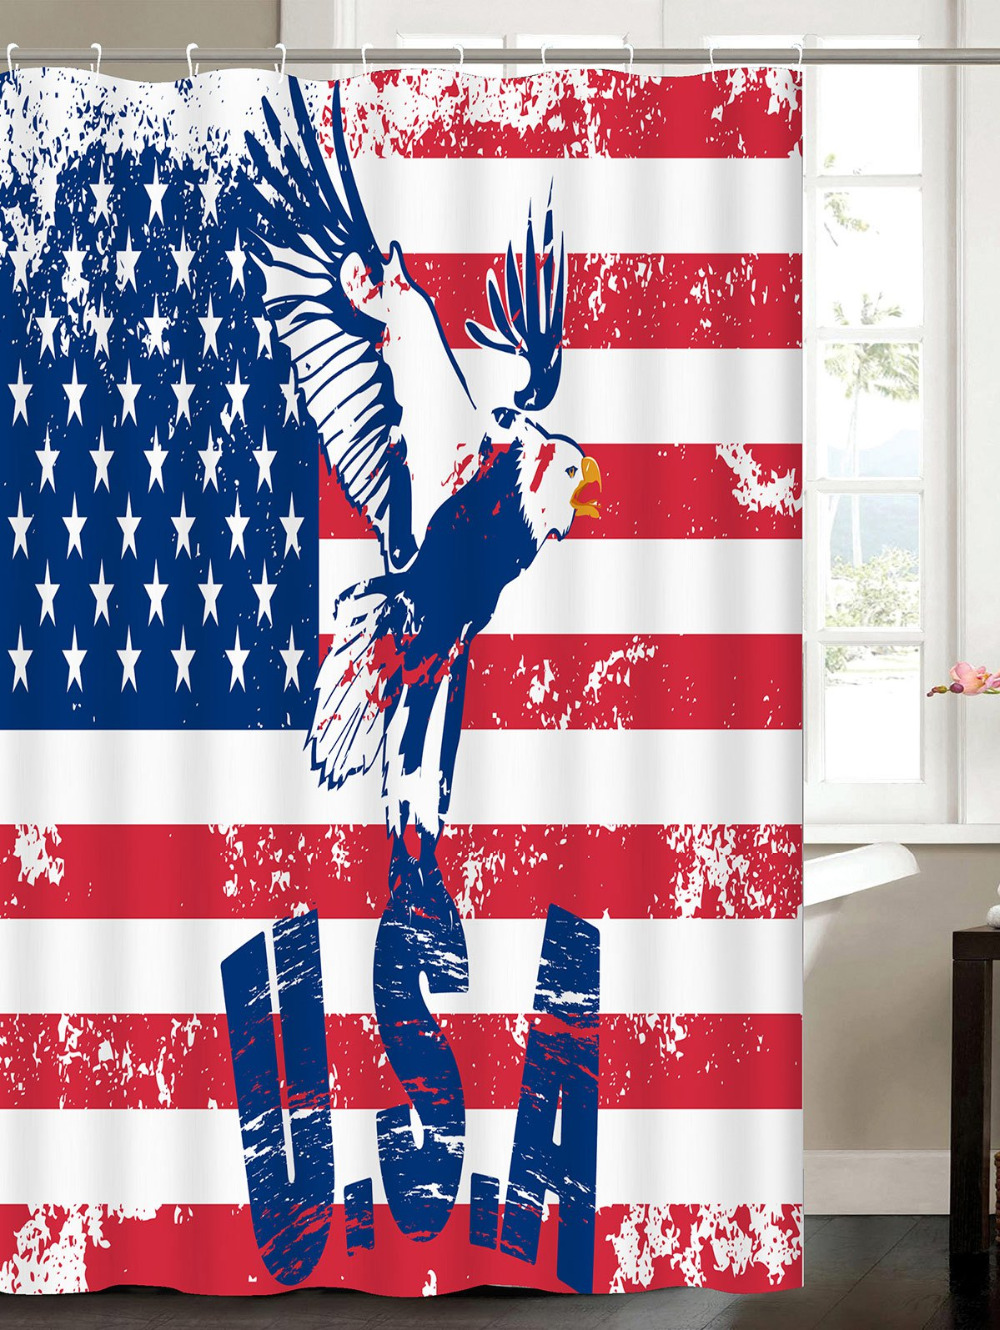 Patriotic American Flag Eagle Waterproof Fabric Shower Curtain Waterproof  Fabric Bath Decor Curtain With Hooks